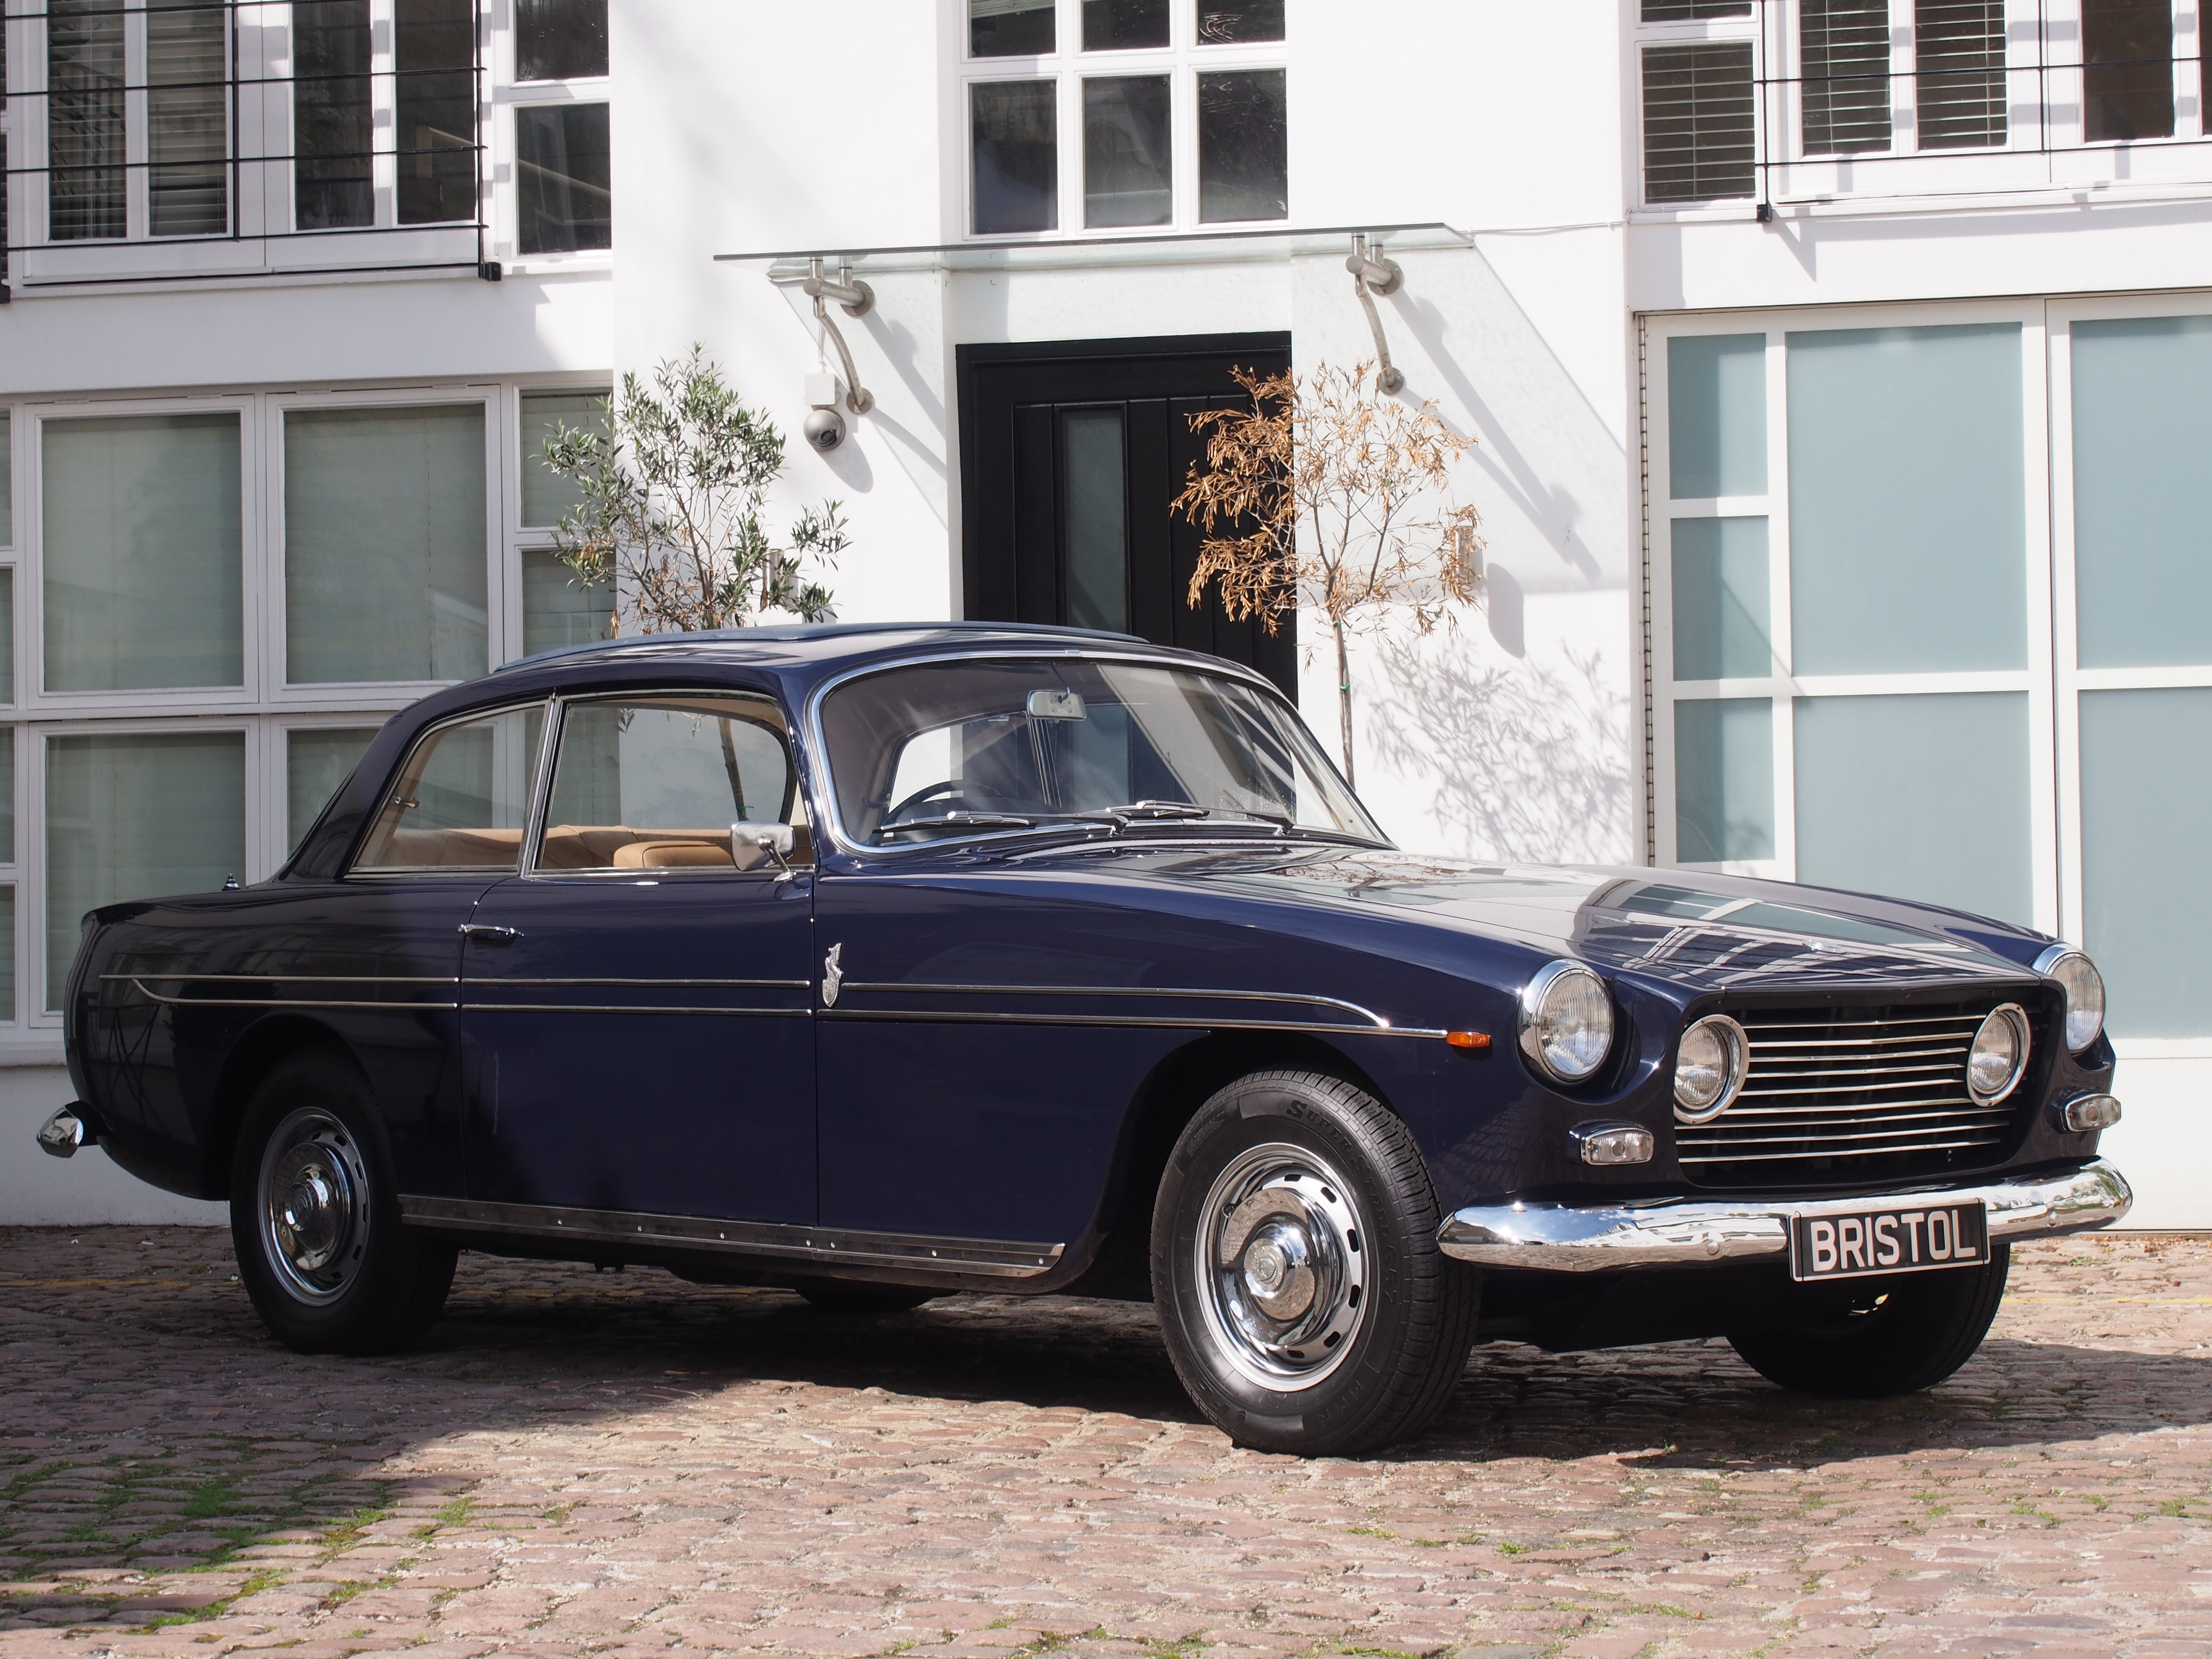 Bristol  Cars For Sale